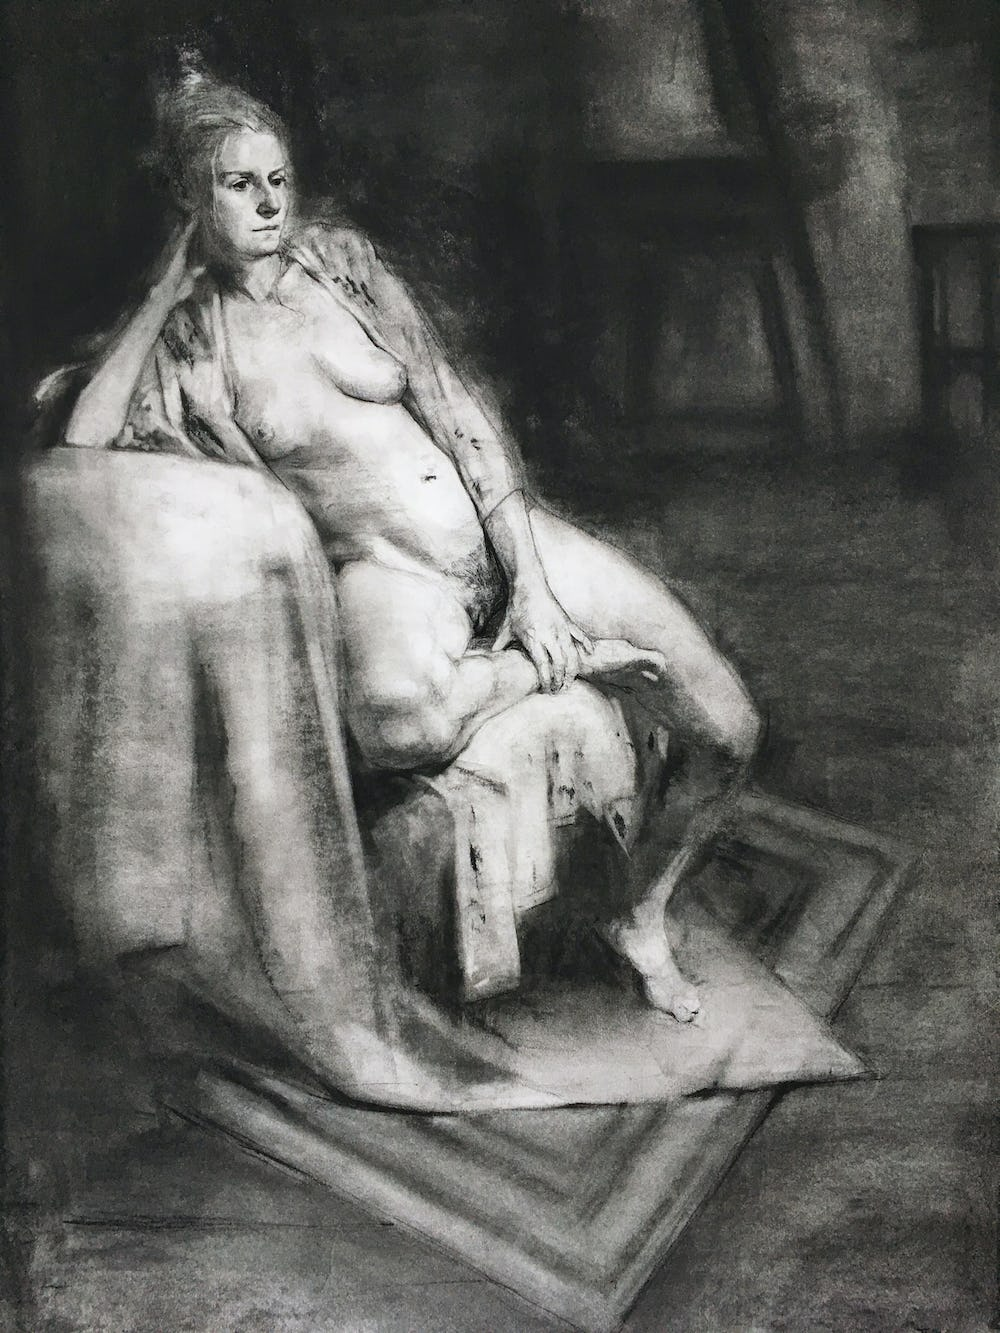 Long pose charcoal